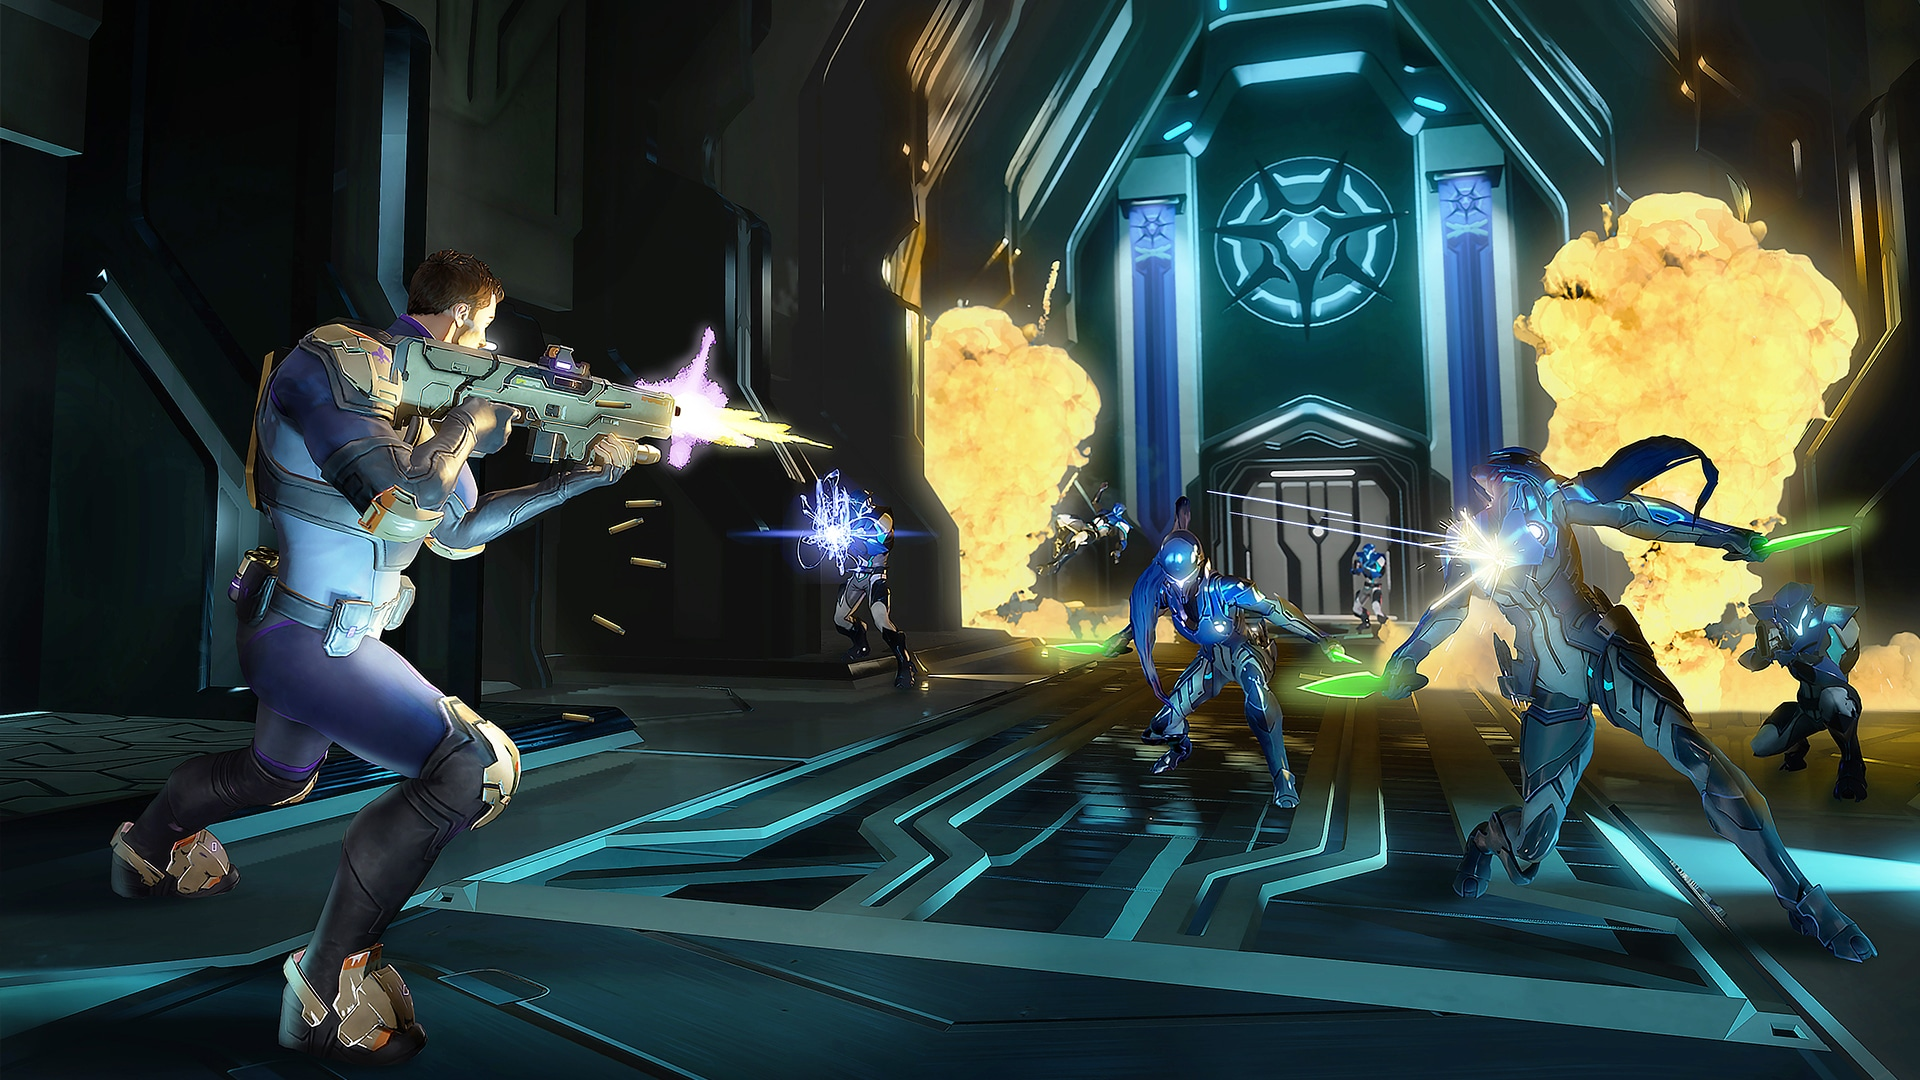 Agents of Mayhem Volition Deep Silver three competing games that do not fit together: Overwatch, Saints Row, Diablo